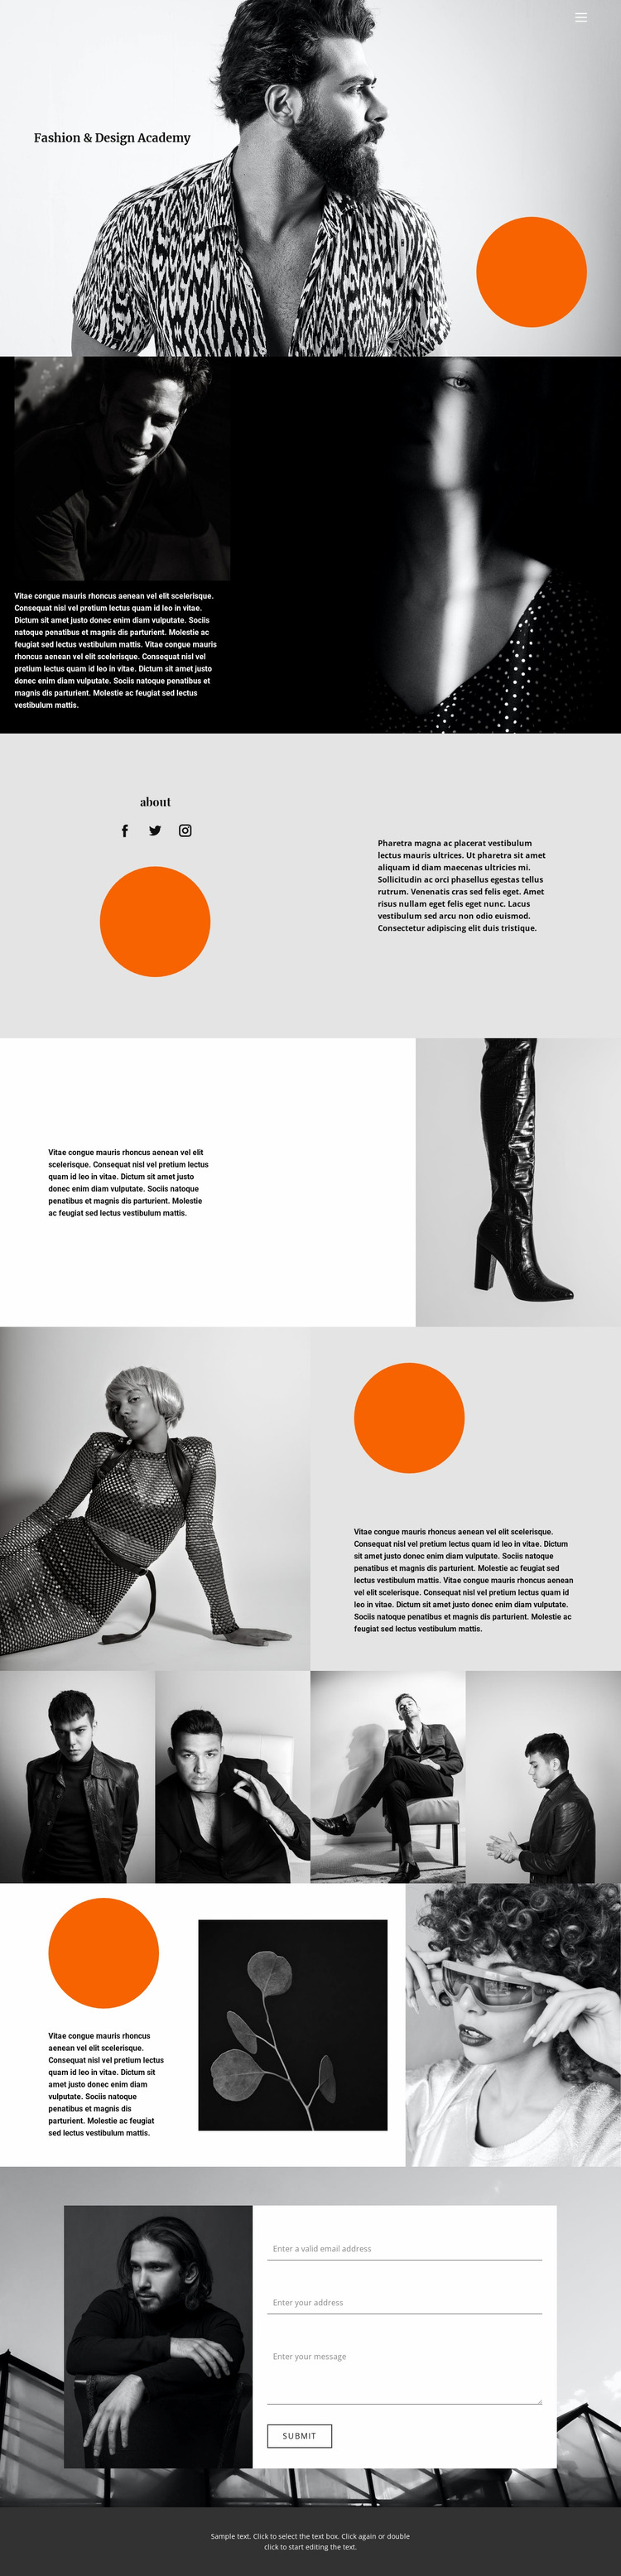 Choose your style Website Mockup